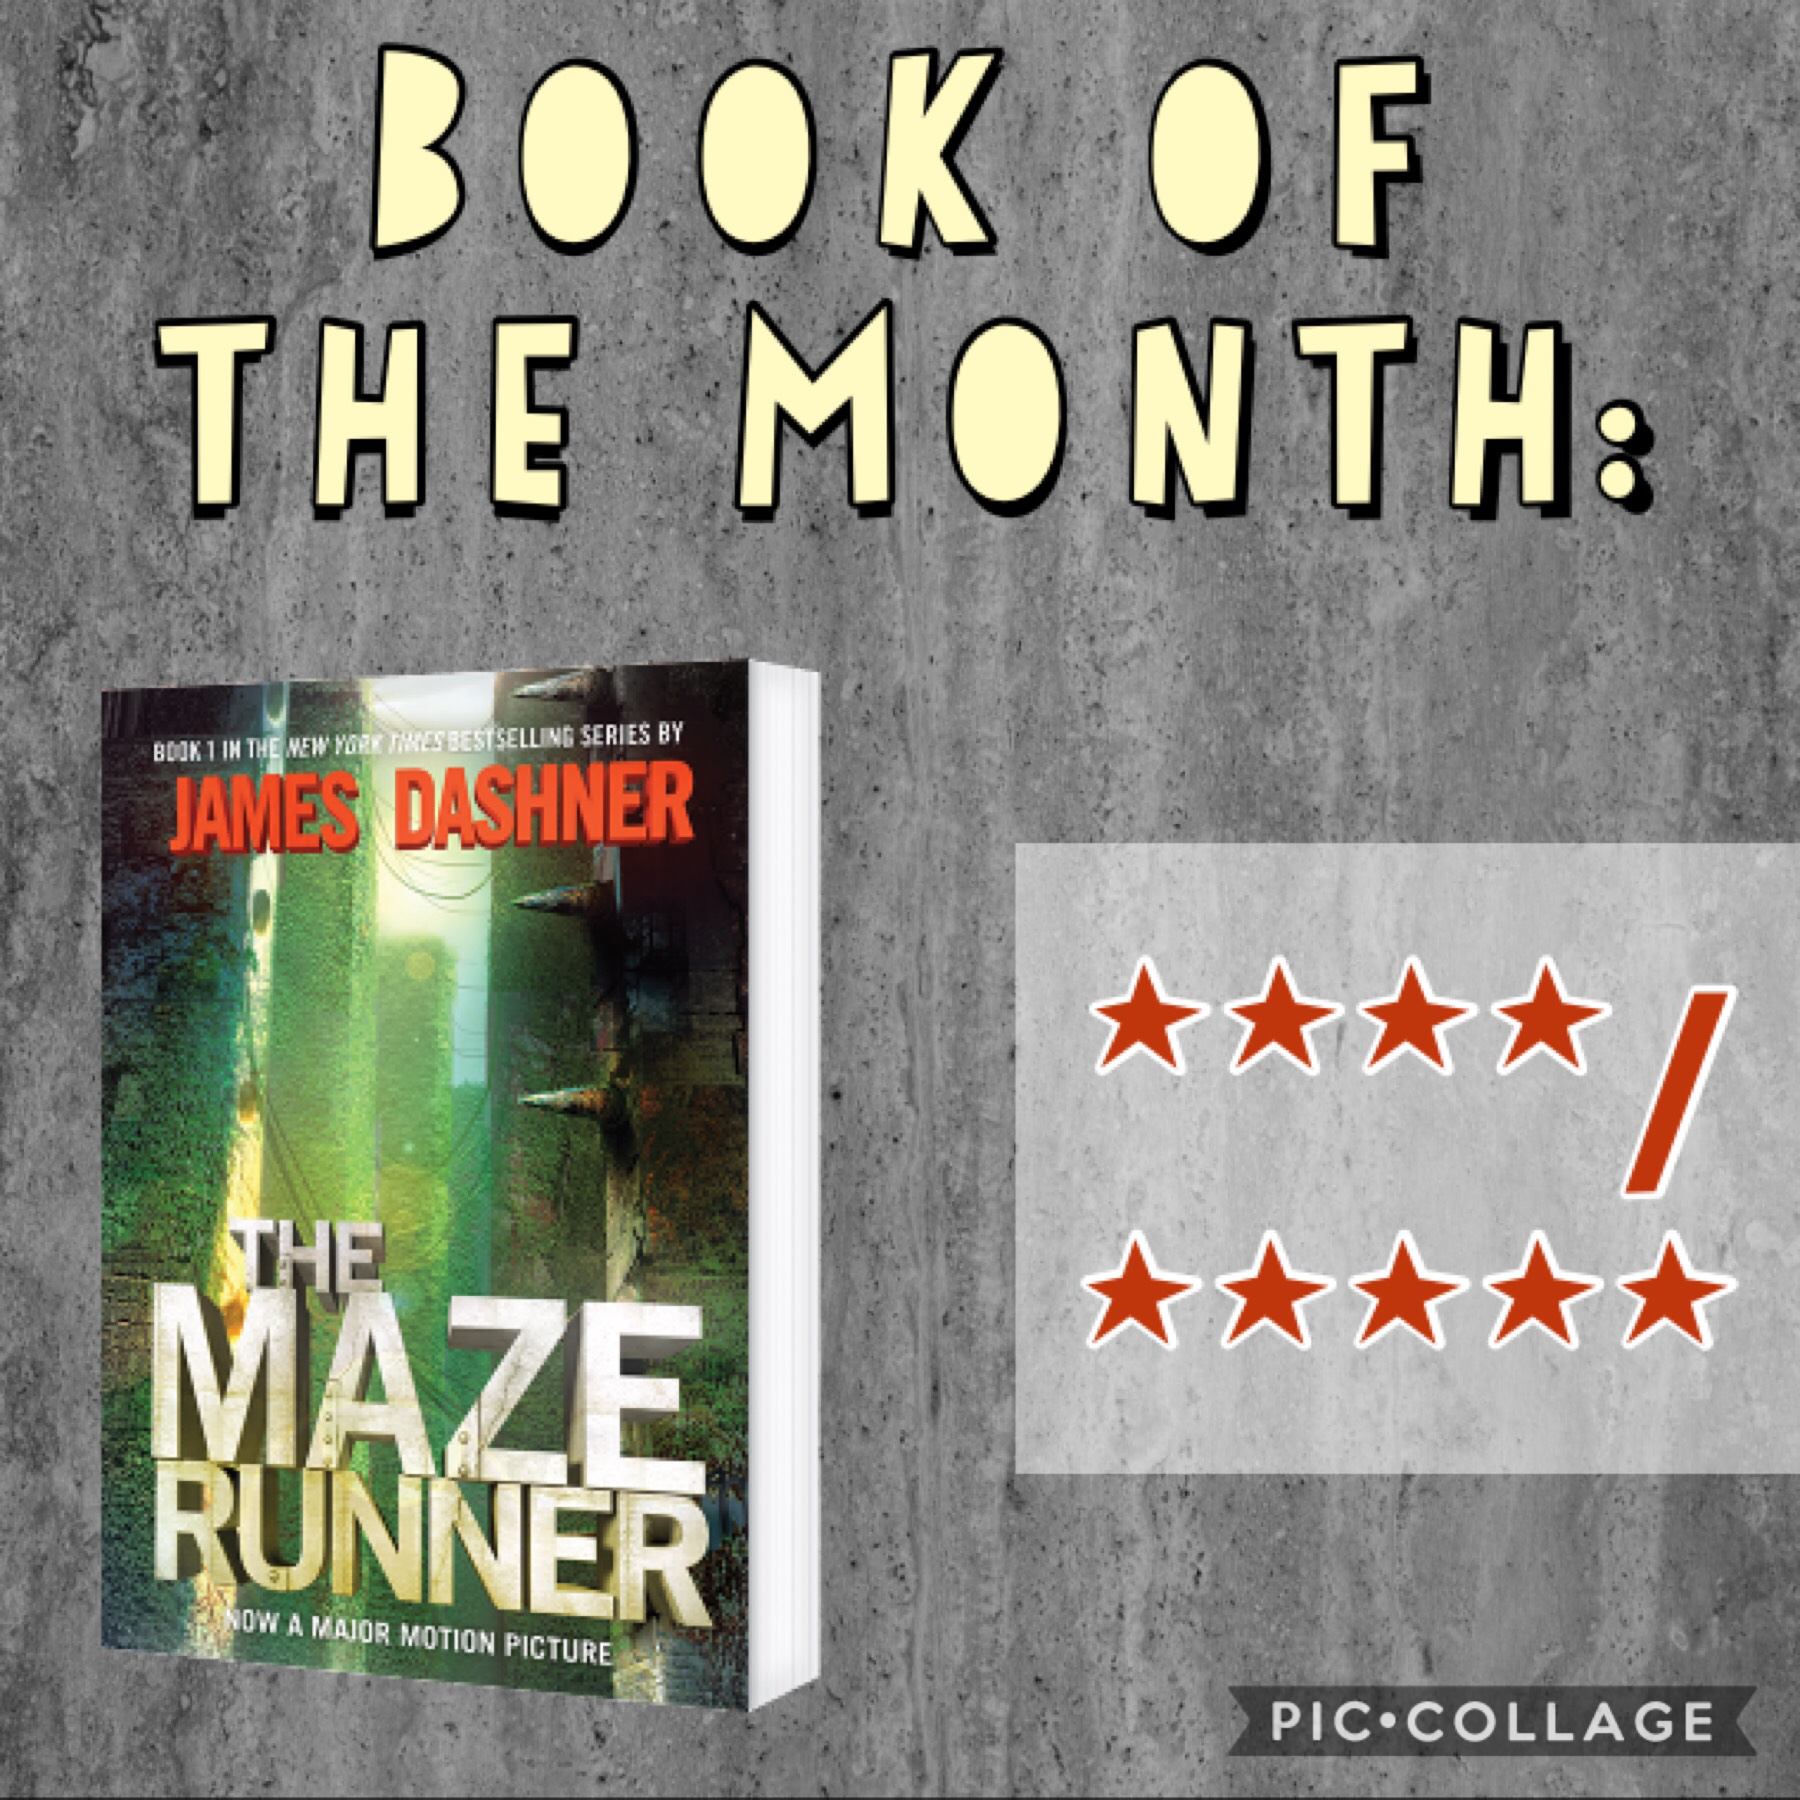 BOTM! 📚 I finally started this last week, it was in my b-day haul last year if anyone remembers. 😅 🗓 I'm half done with it, so I posted this now. 🏃🏻♂️🏃🏼♂️🏃🏽♀️ It's pretty good. 👌🏻 I literally haven't read since last year. 😵 Also, it was snowing... 🥶